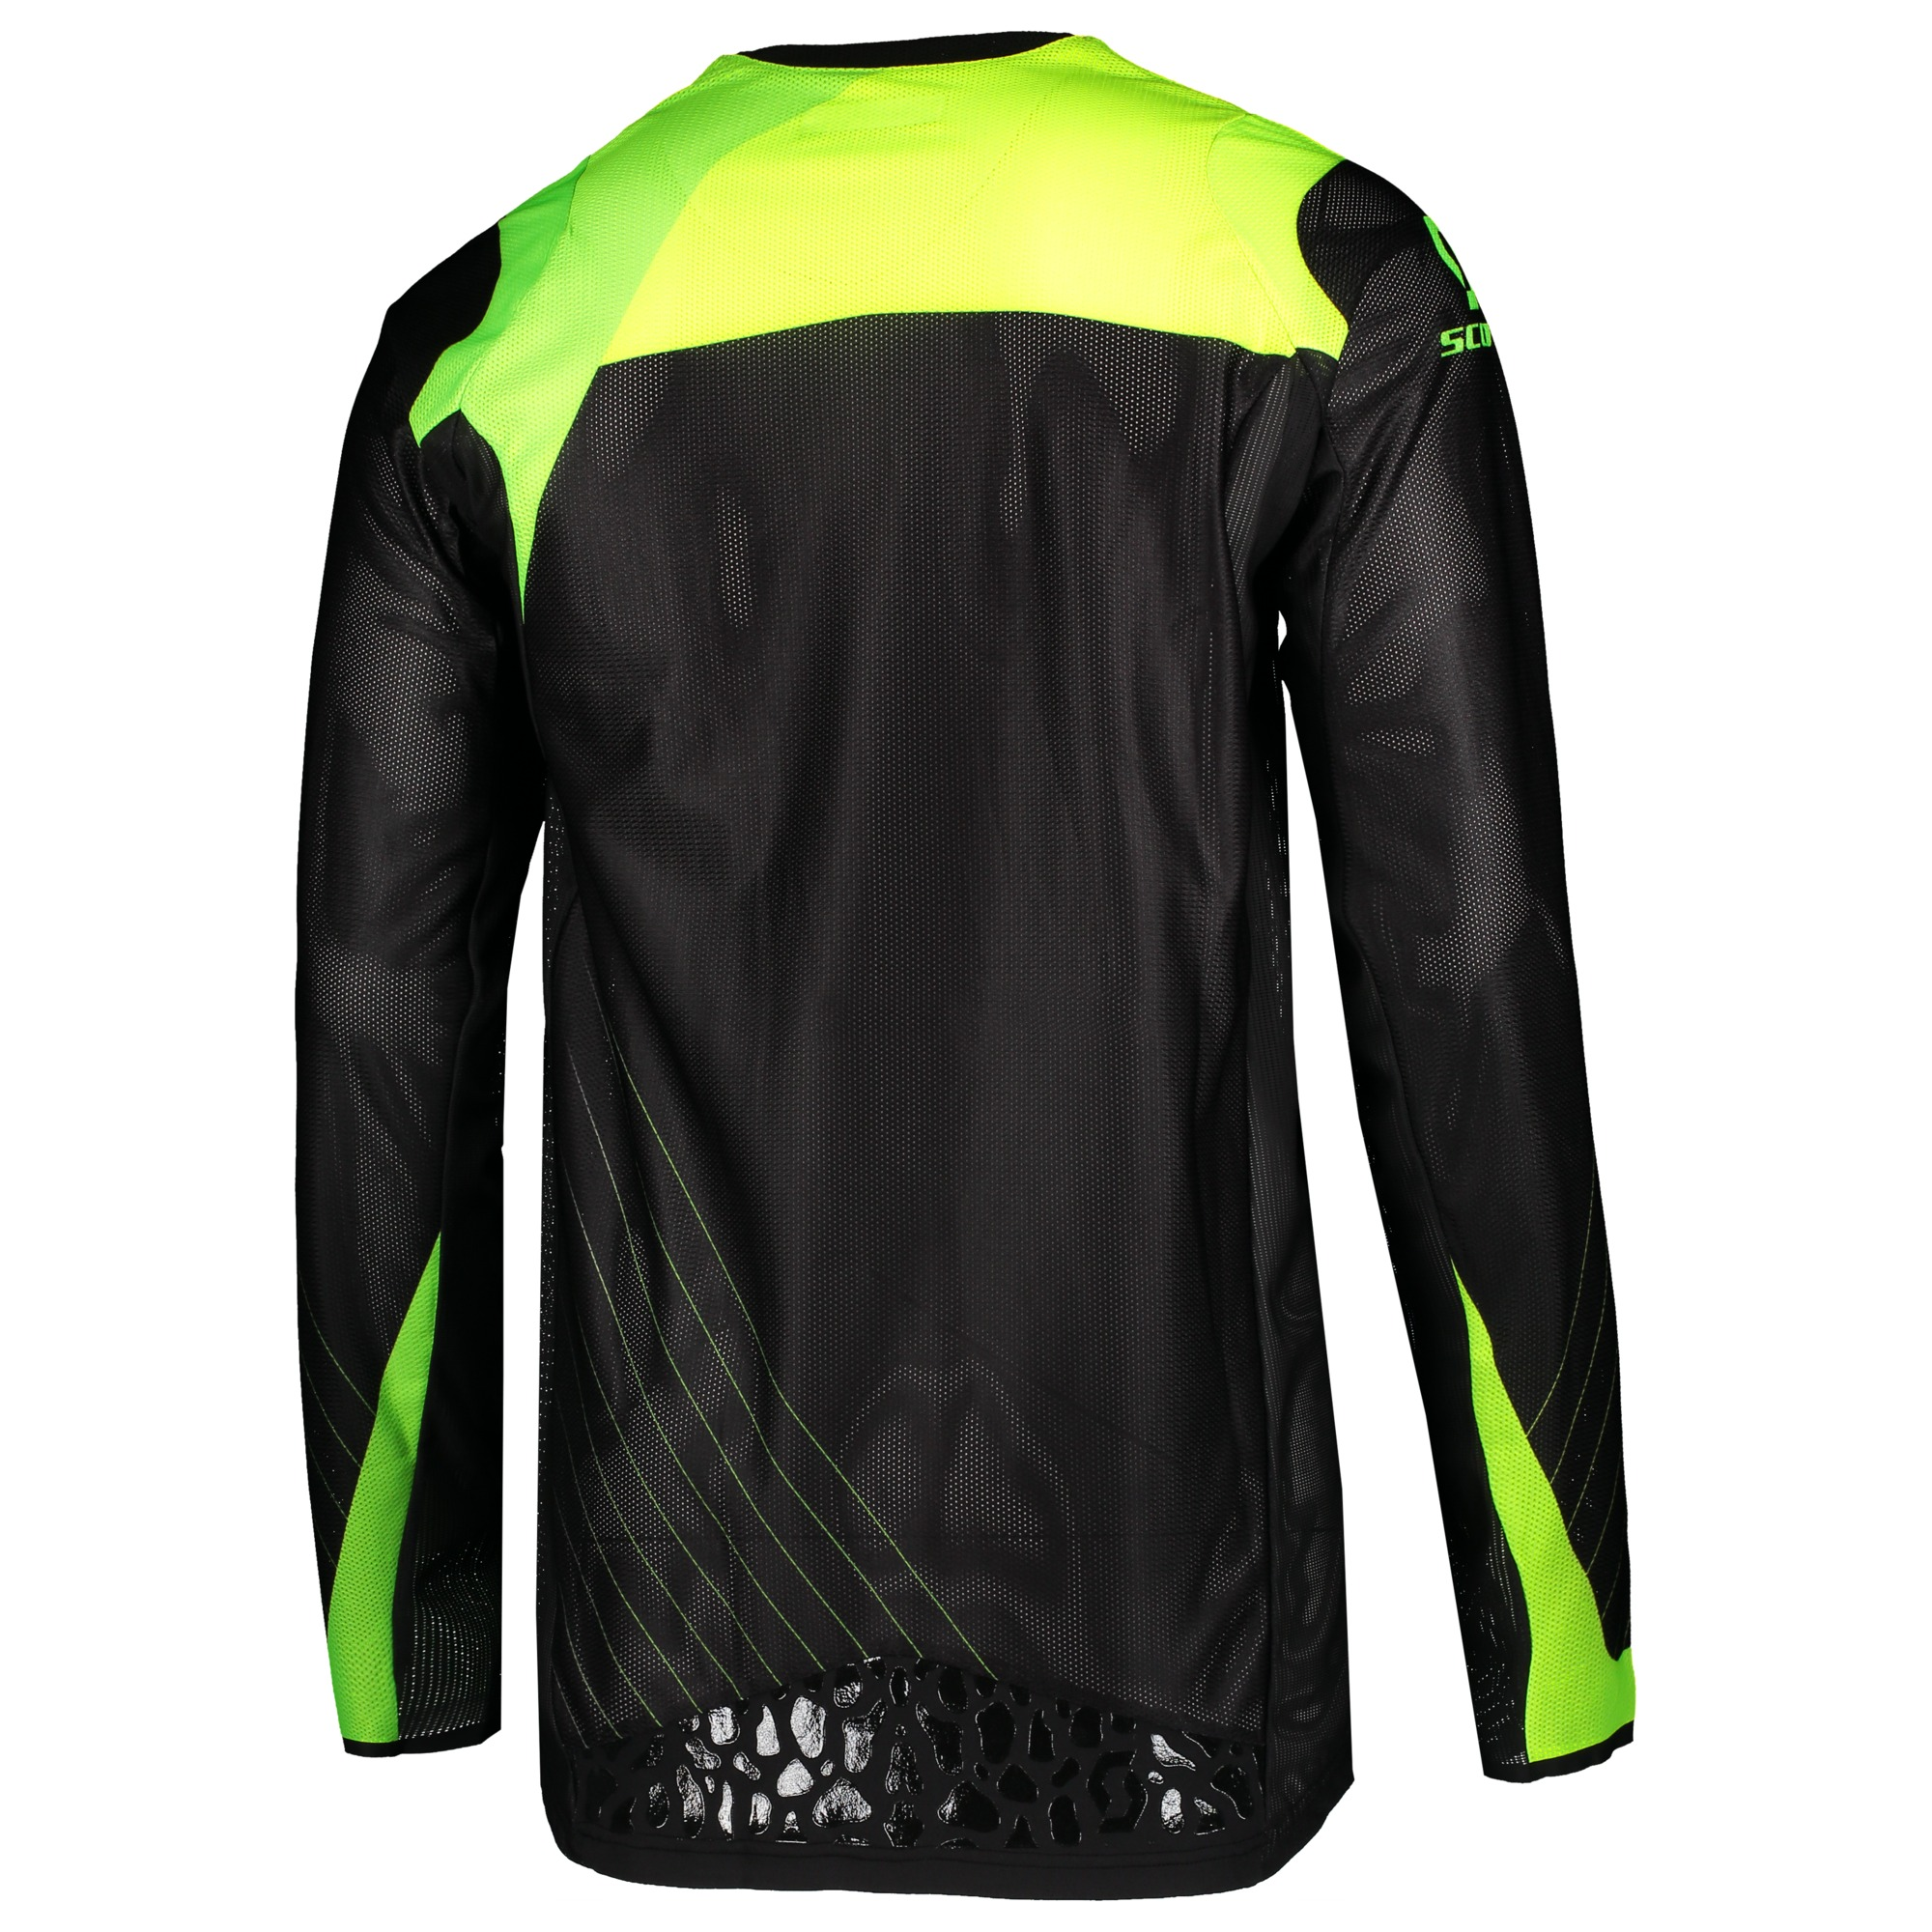 Maillot SCOTT 450 Angled Light jersey